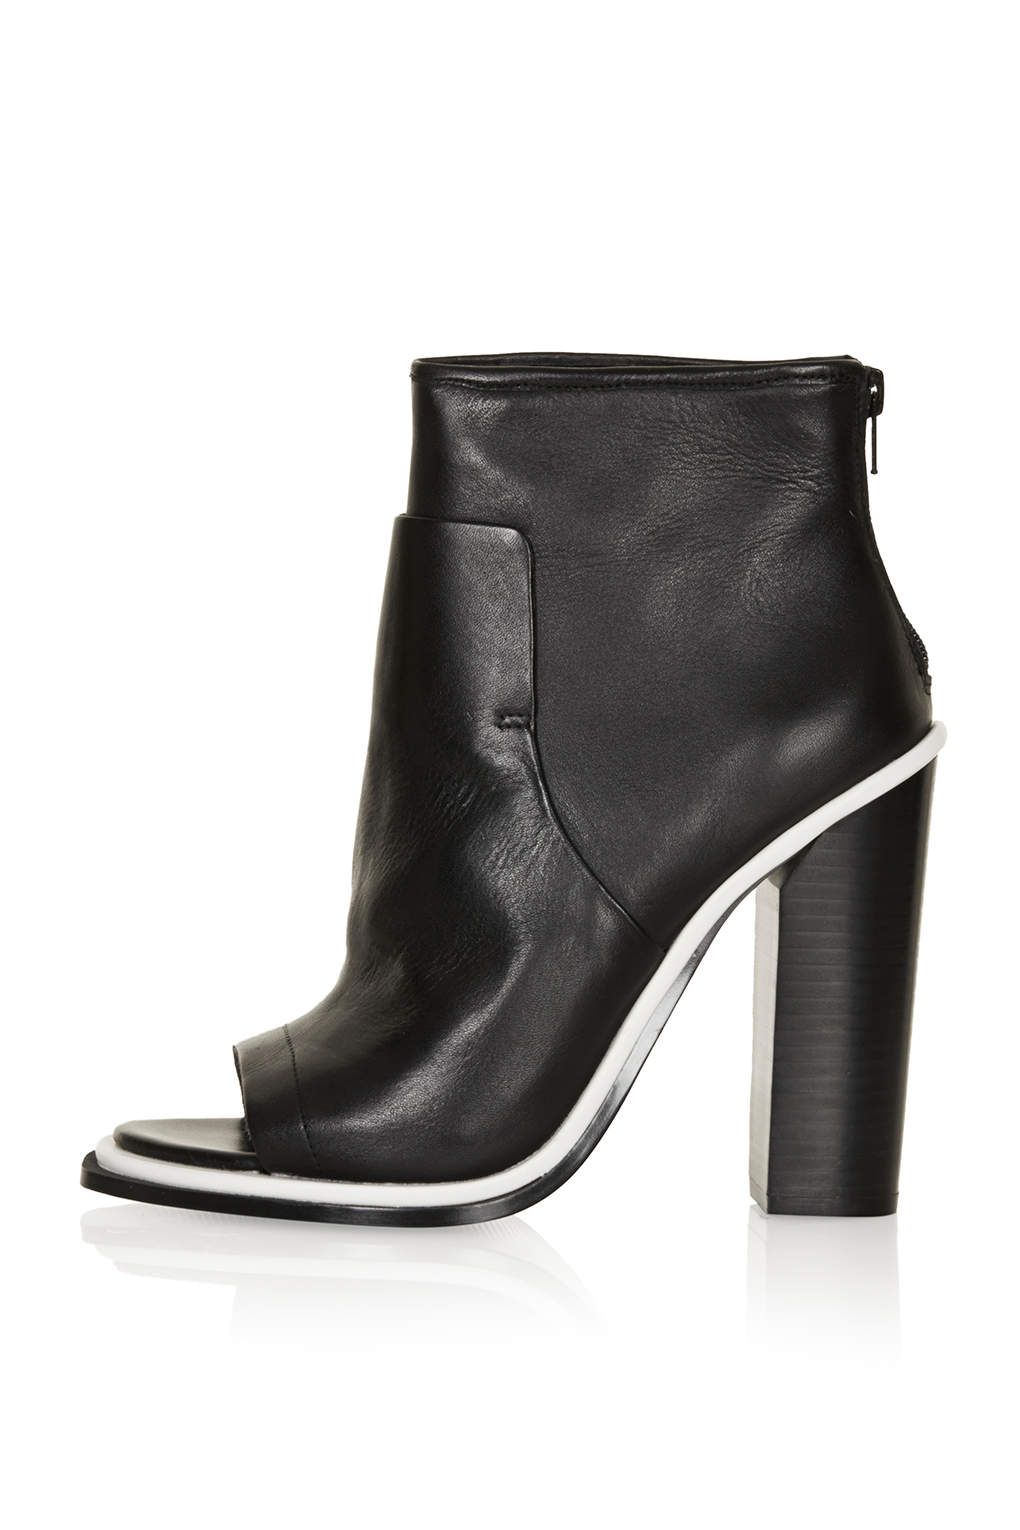 Lyst Topshop Pounce Premium Peep Toe Boots In Black